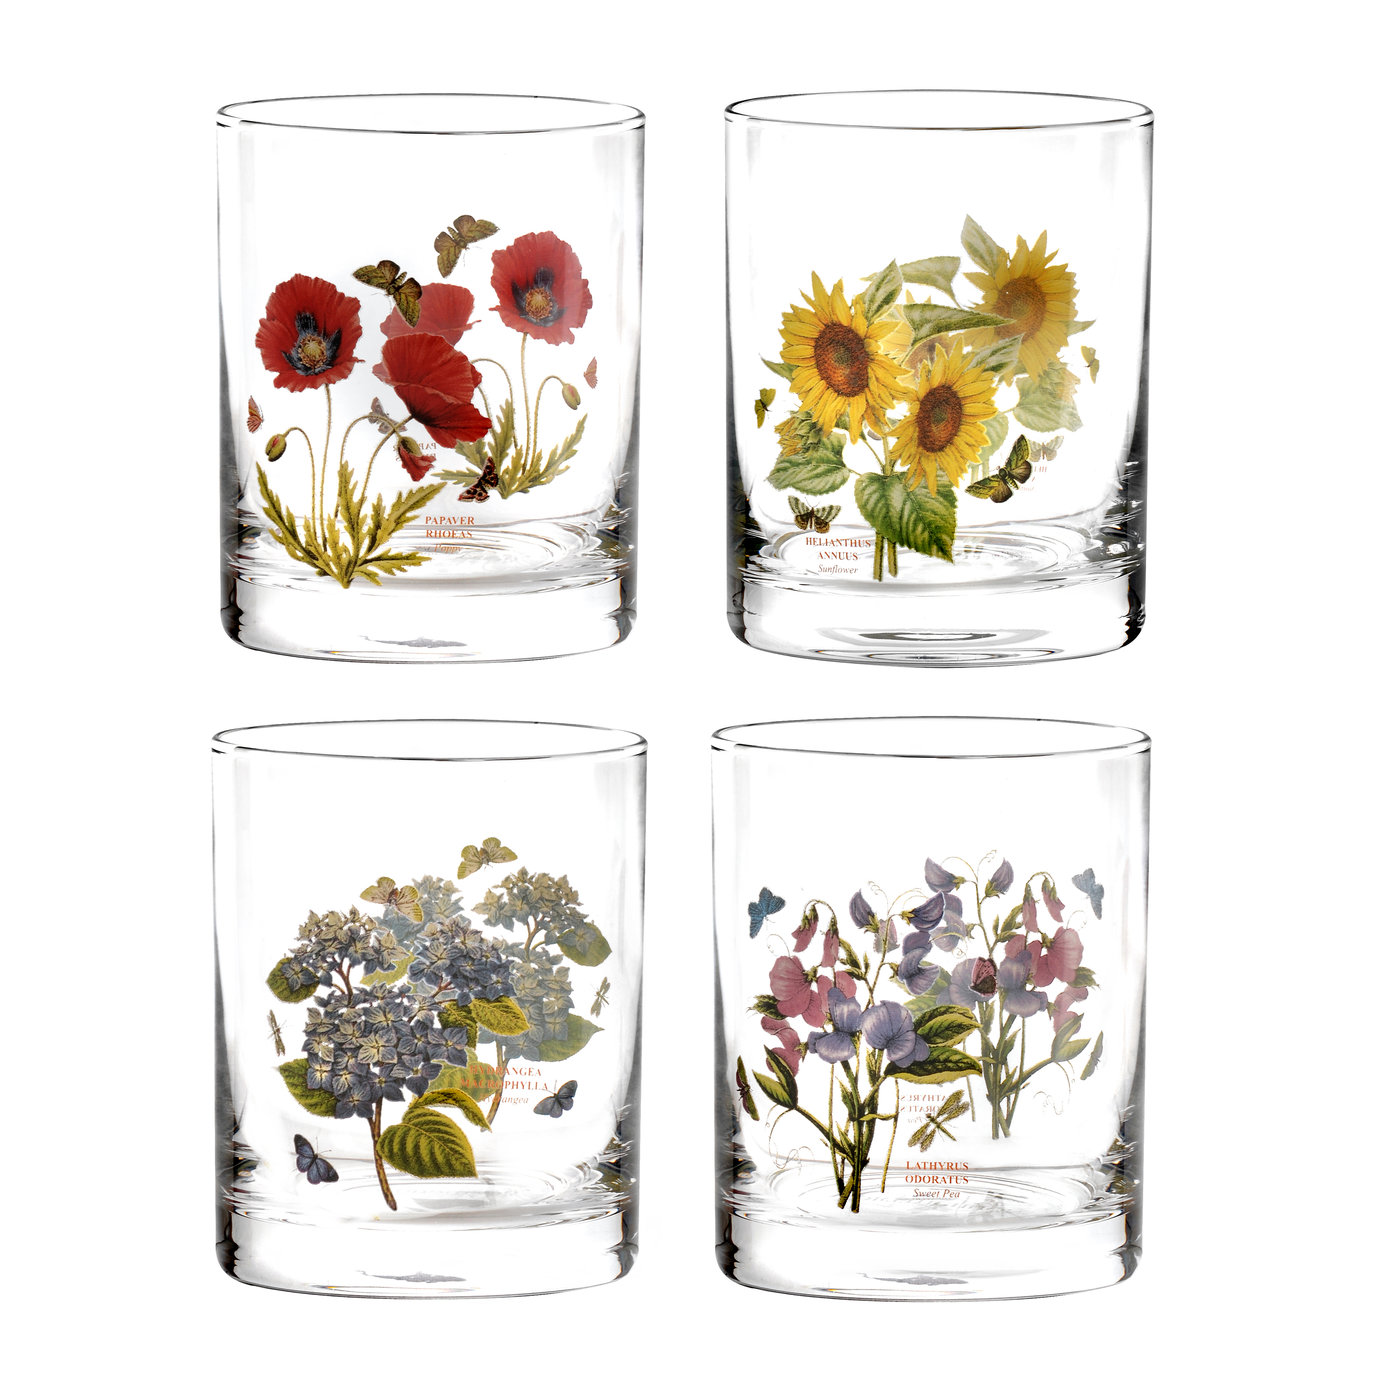 Portmeirion Botanic Garden Set of 4 Double Old Fashioned Glasses image number 0